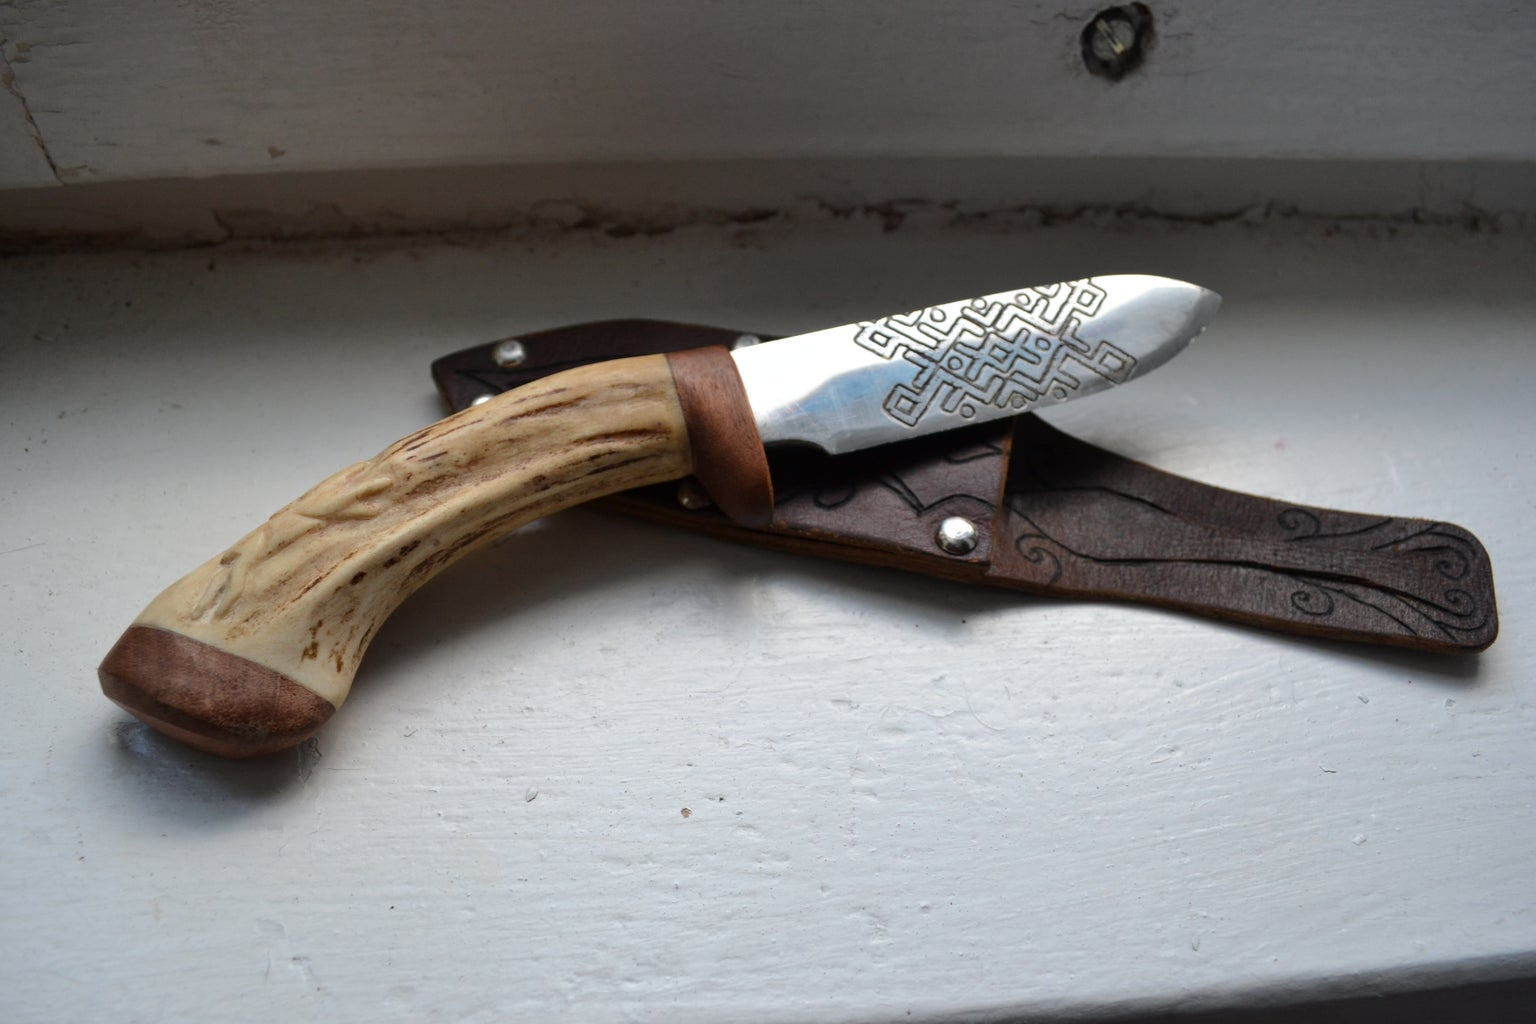 Completion of the Knife